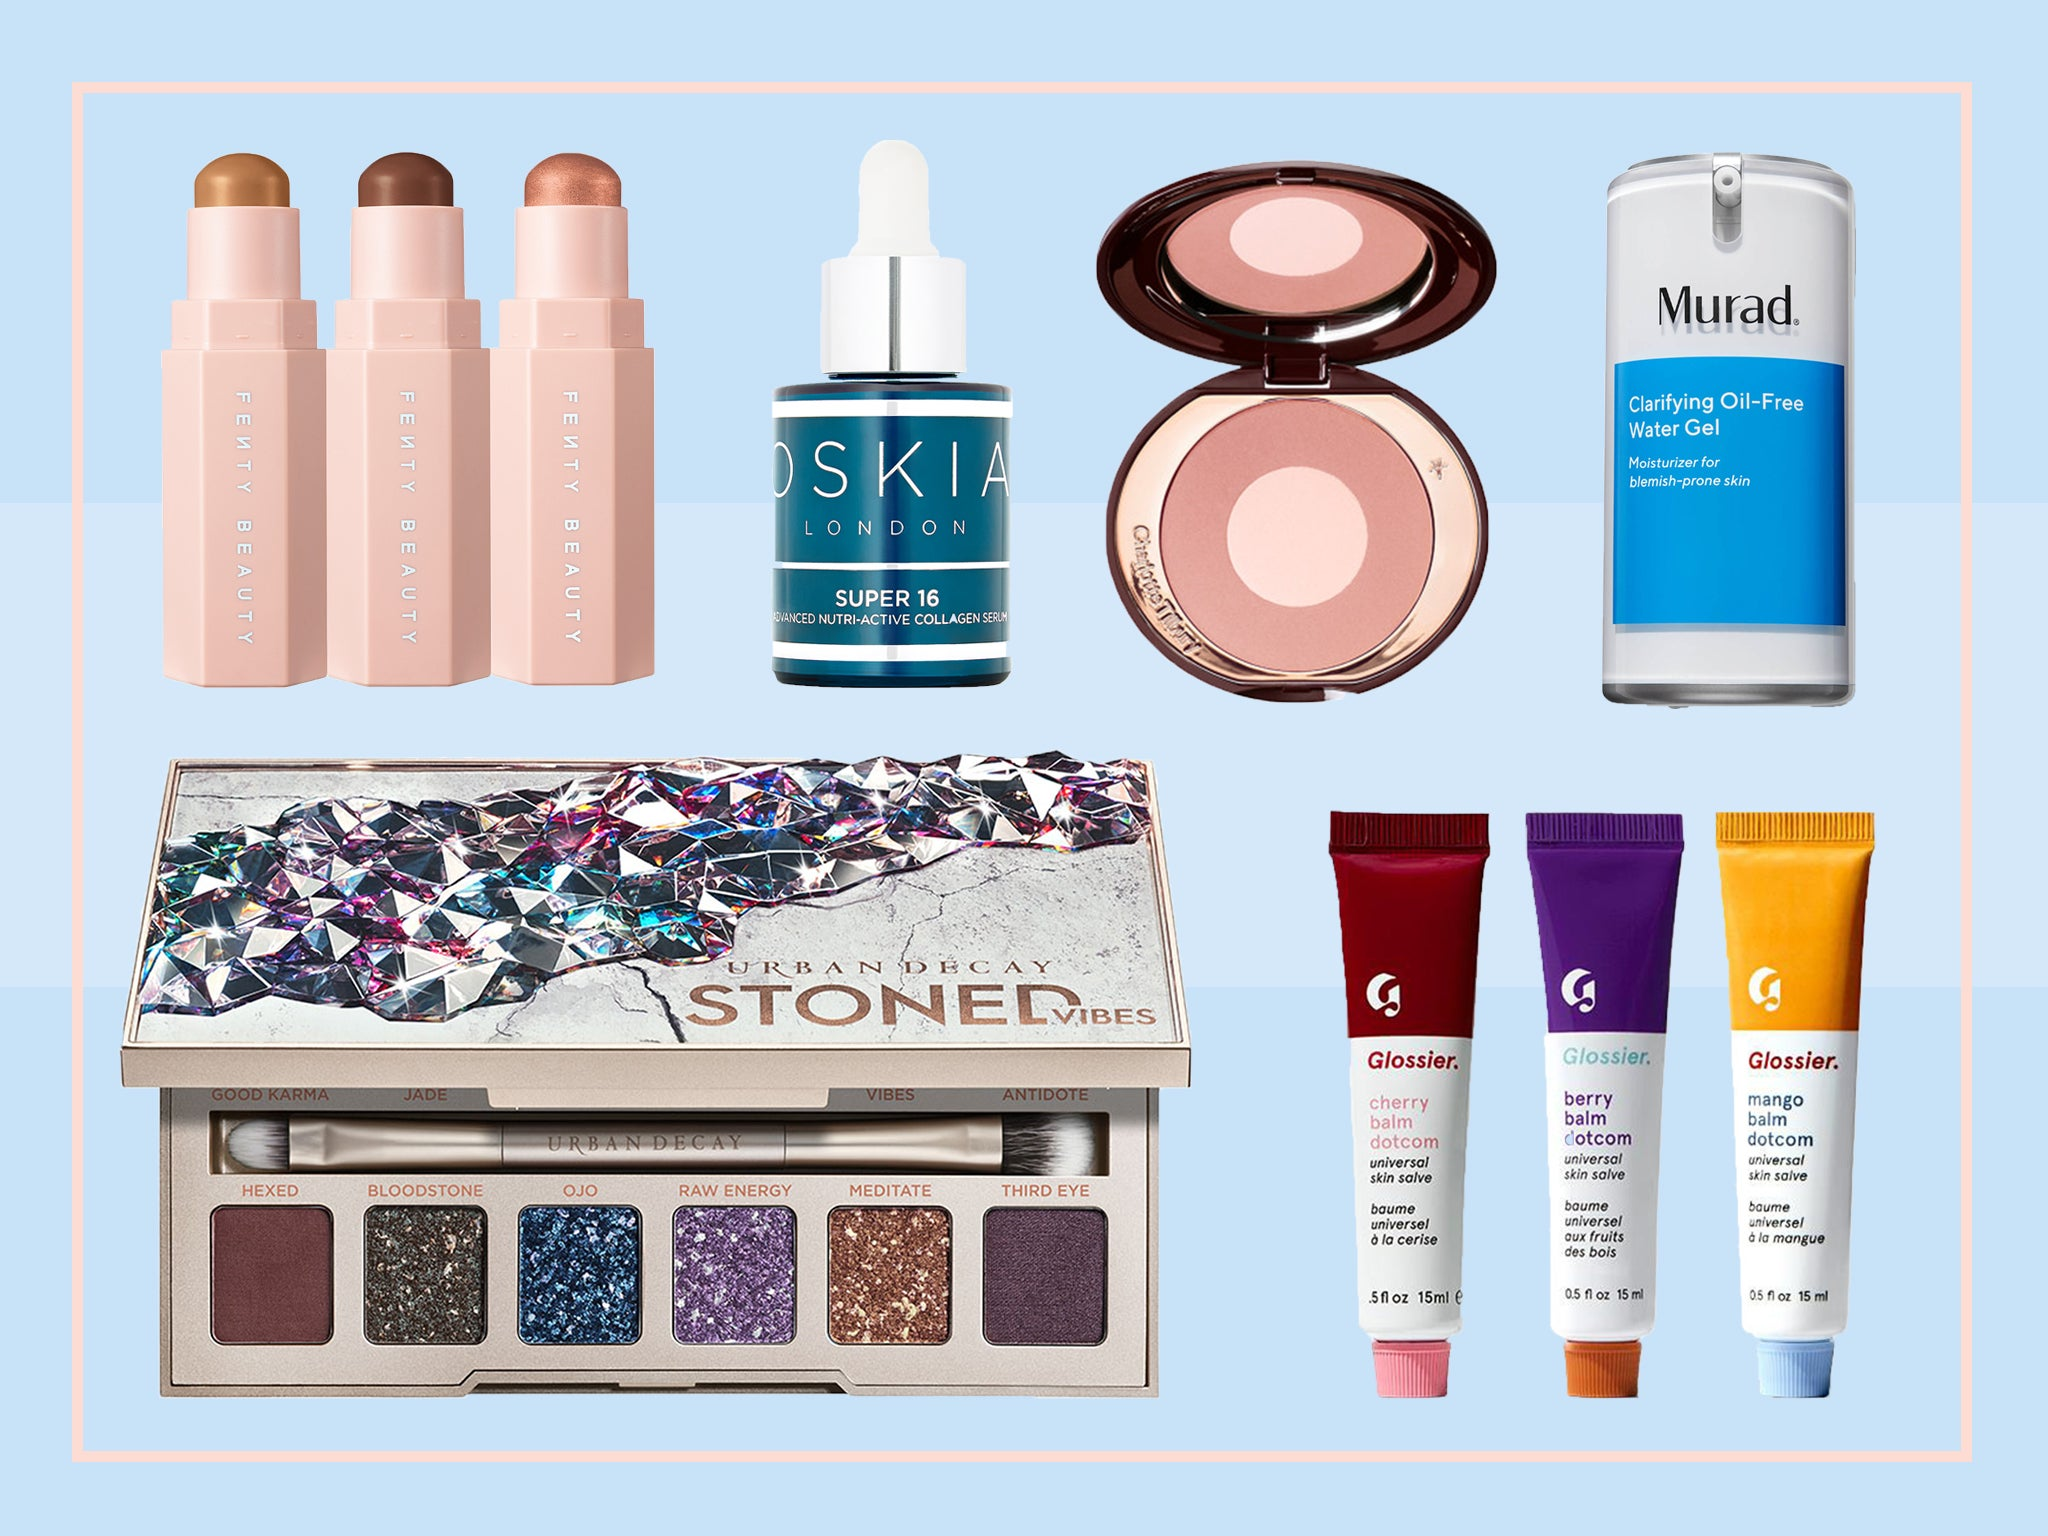 Black Friday beauty deals 2020: Offers from Boots, Fenty, Urban Decay, Huda Beauty and more